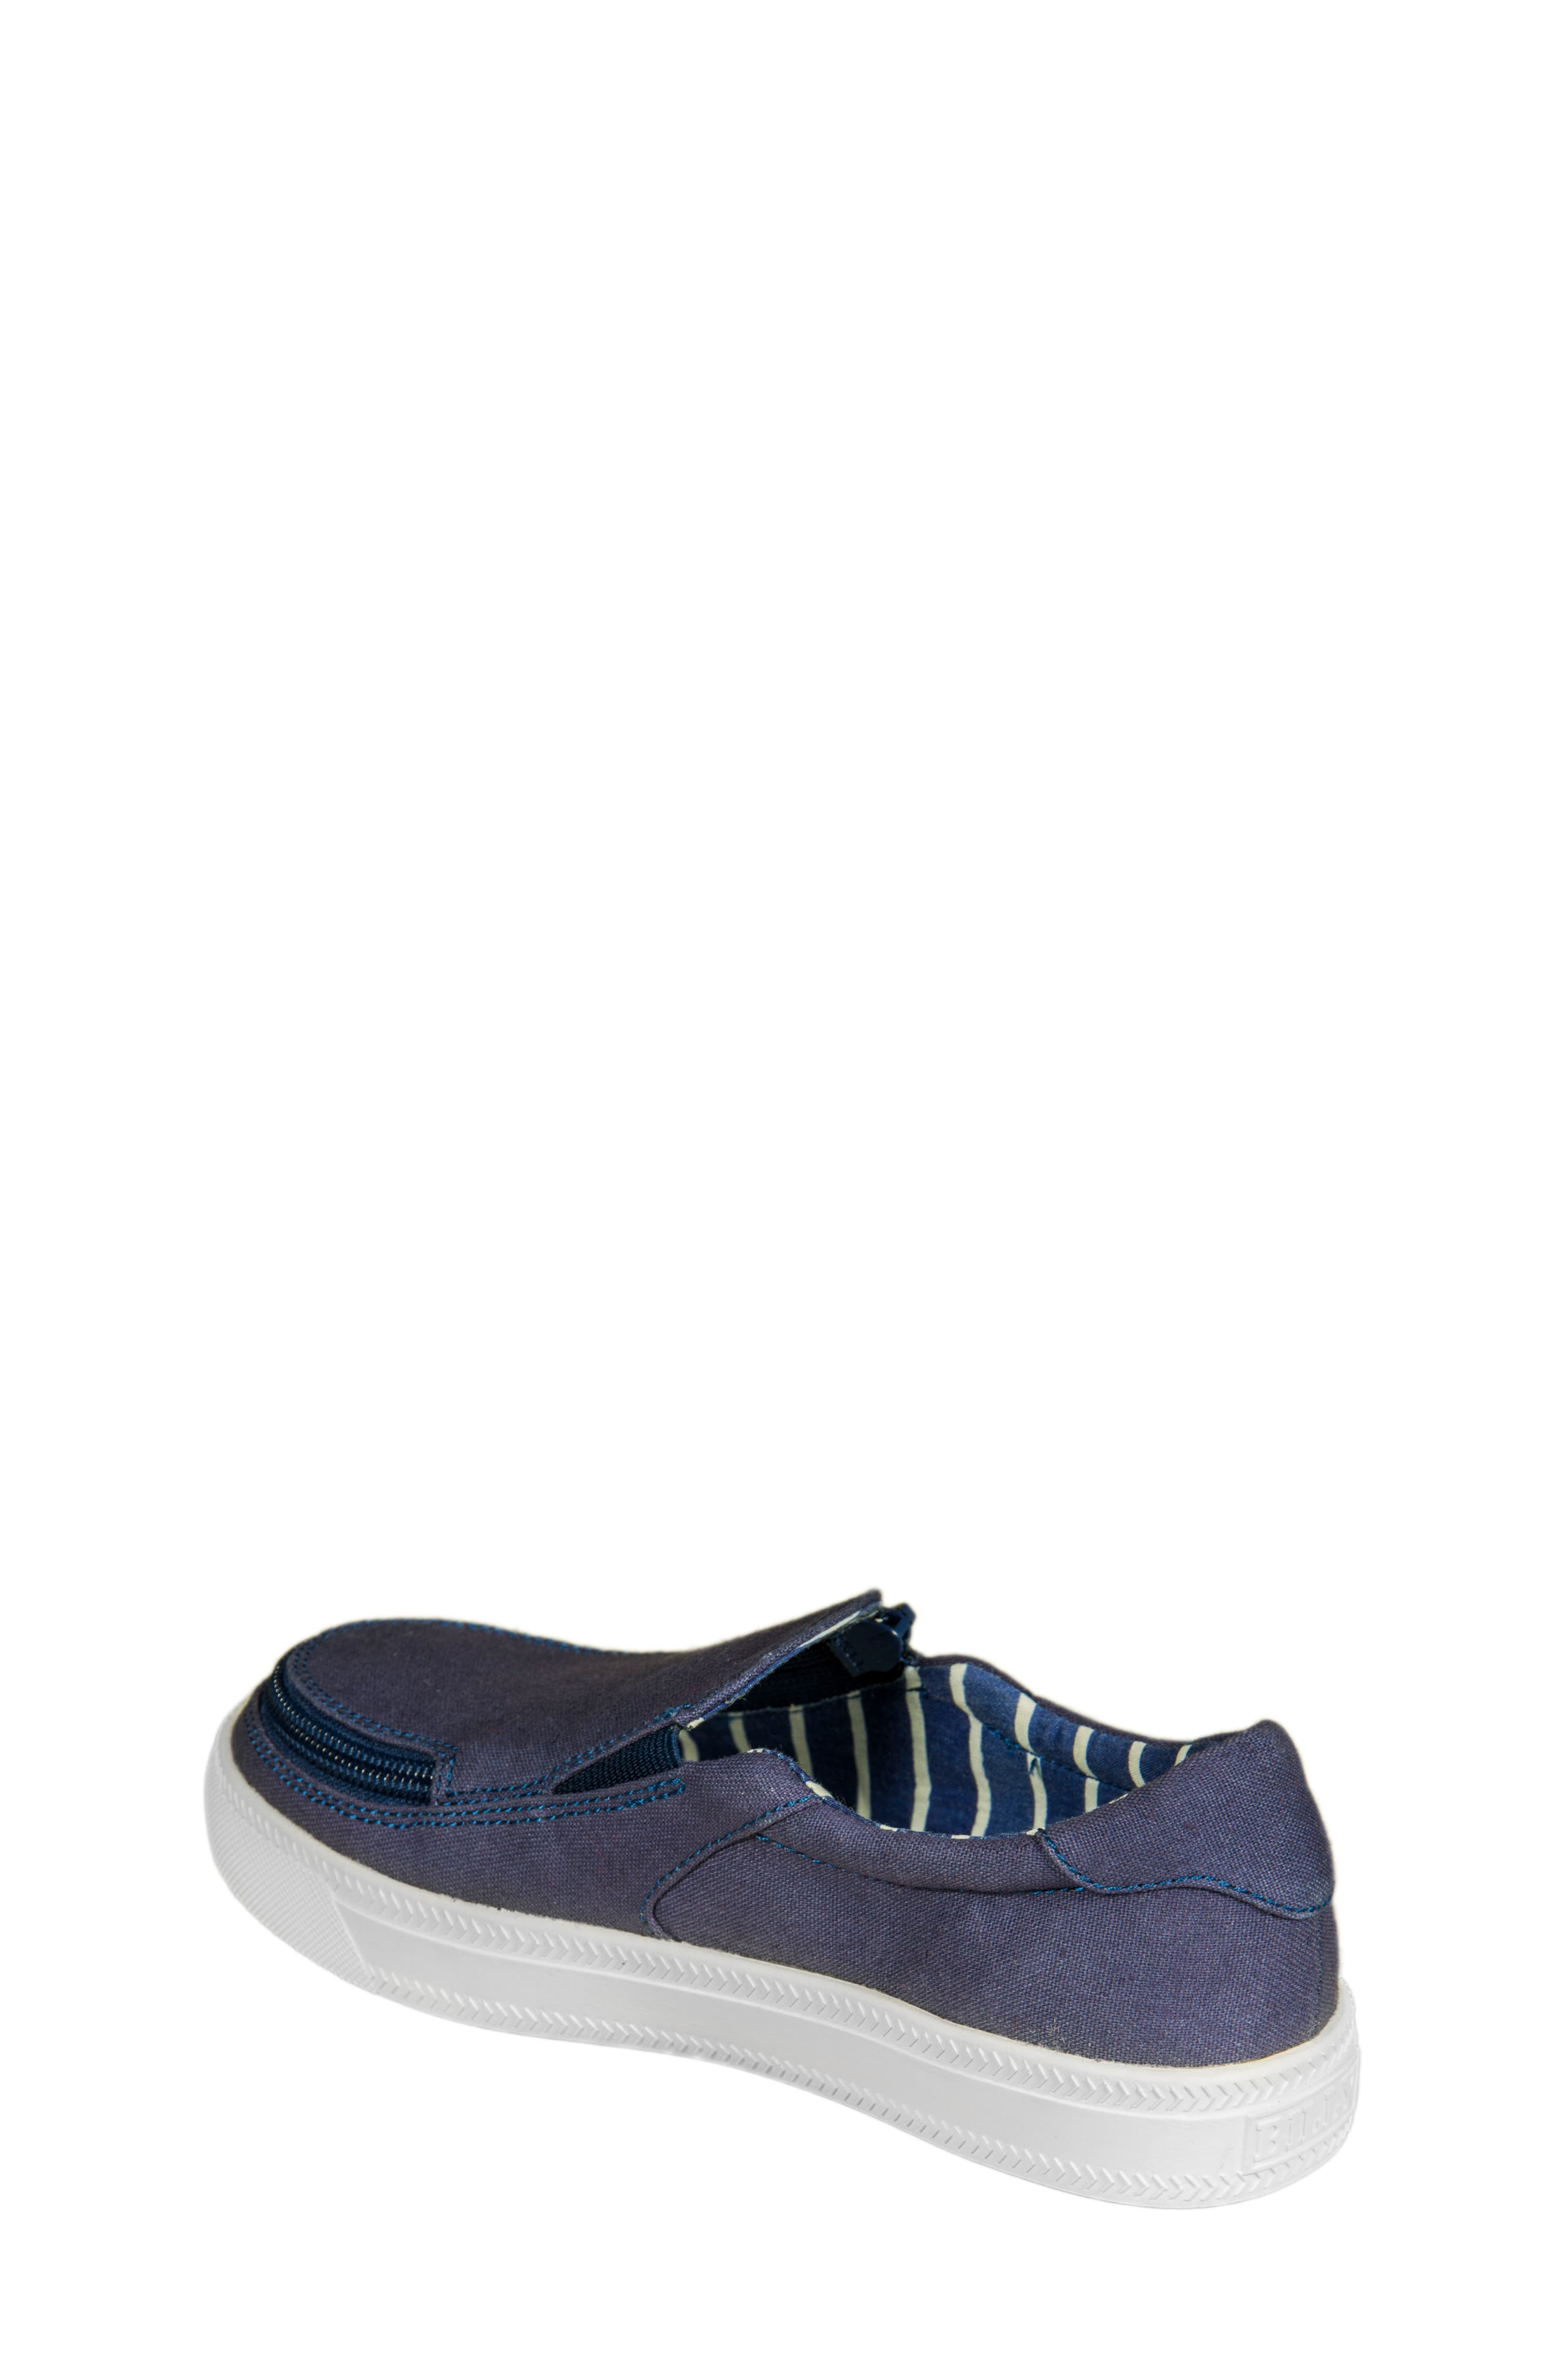 Zip Around Low Top Sneaker,                             Alternate thumbnail 2, color,                             Navy Canvas